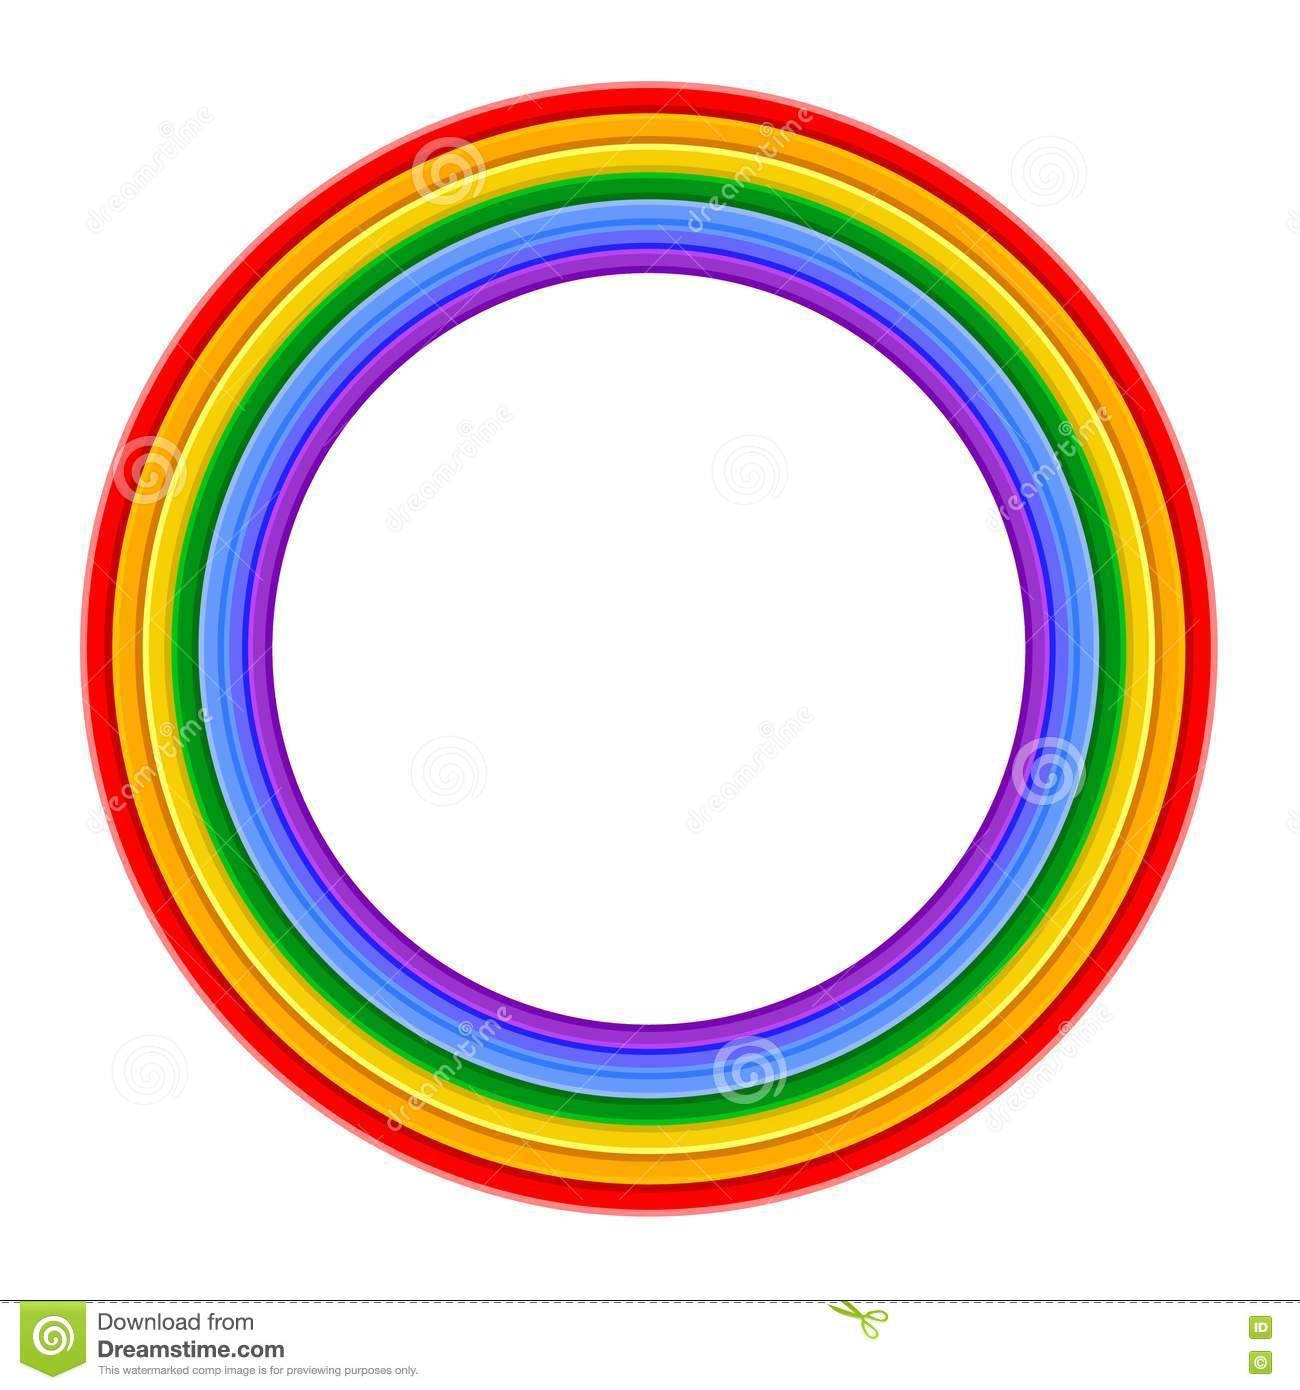 Colorful Rainbow ring Vector Illustration